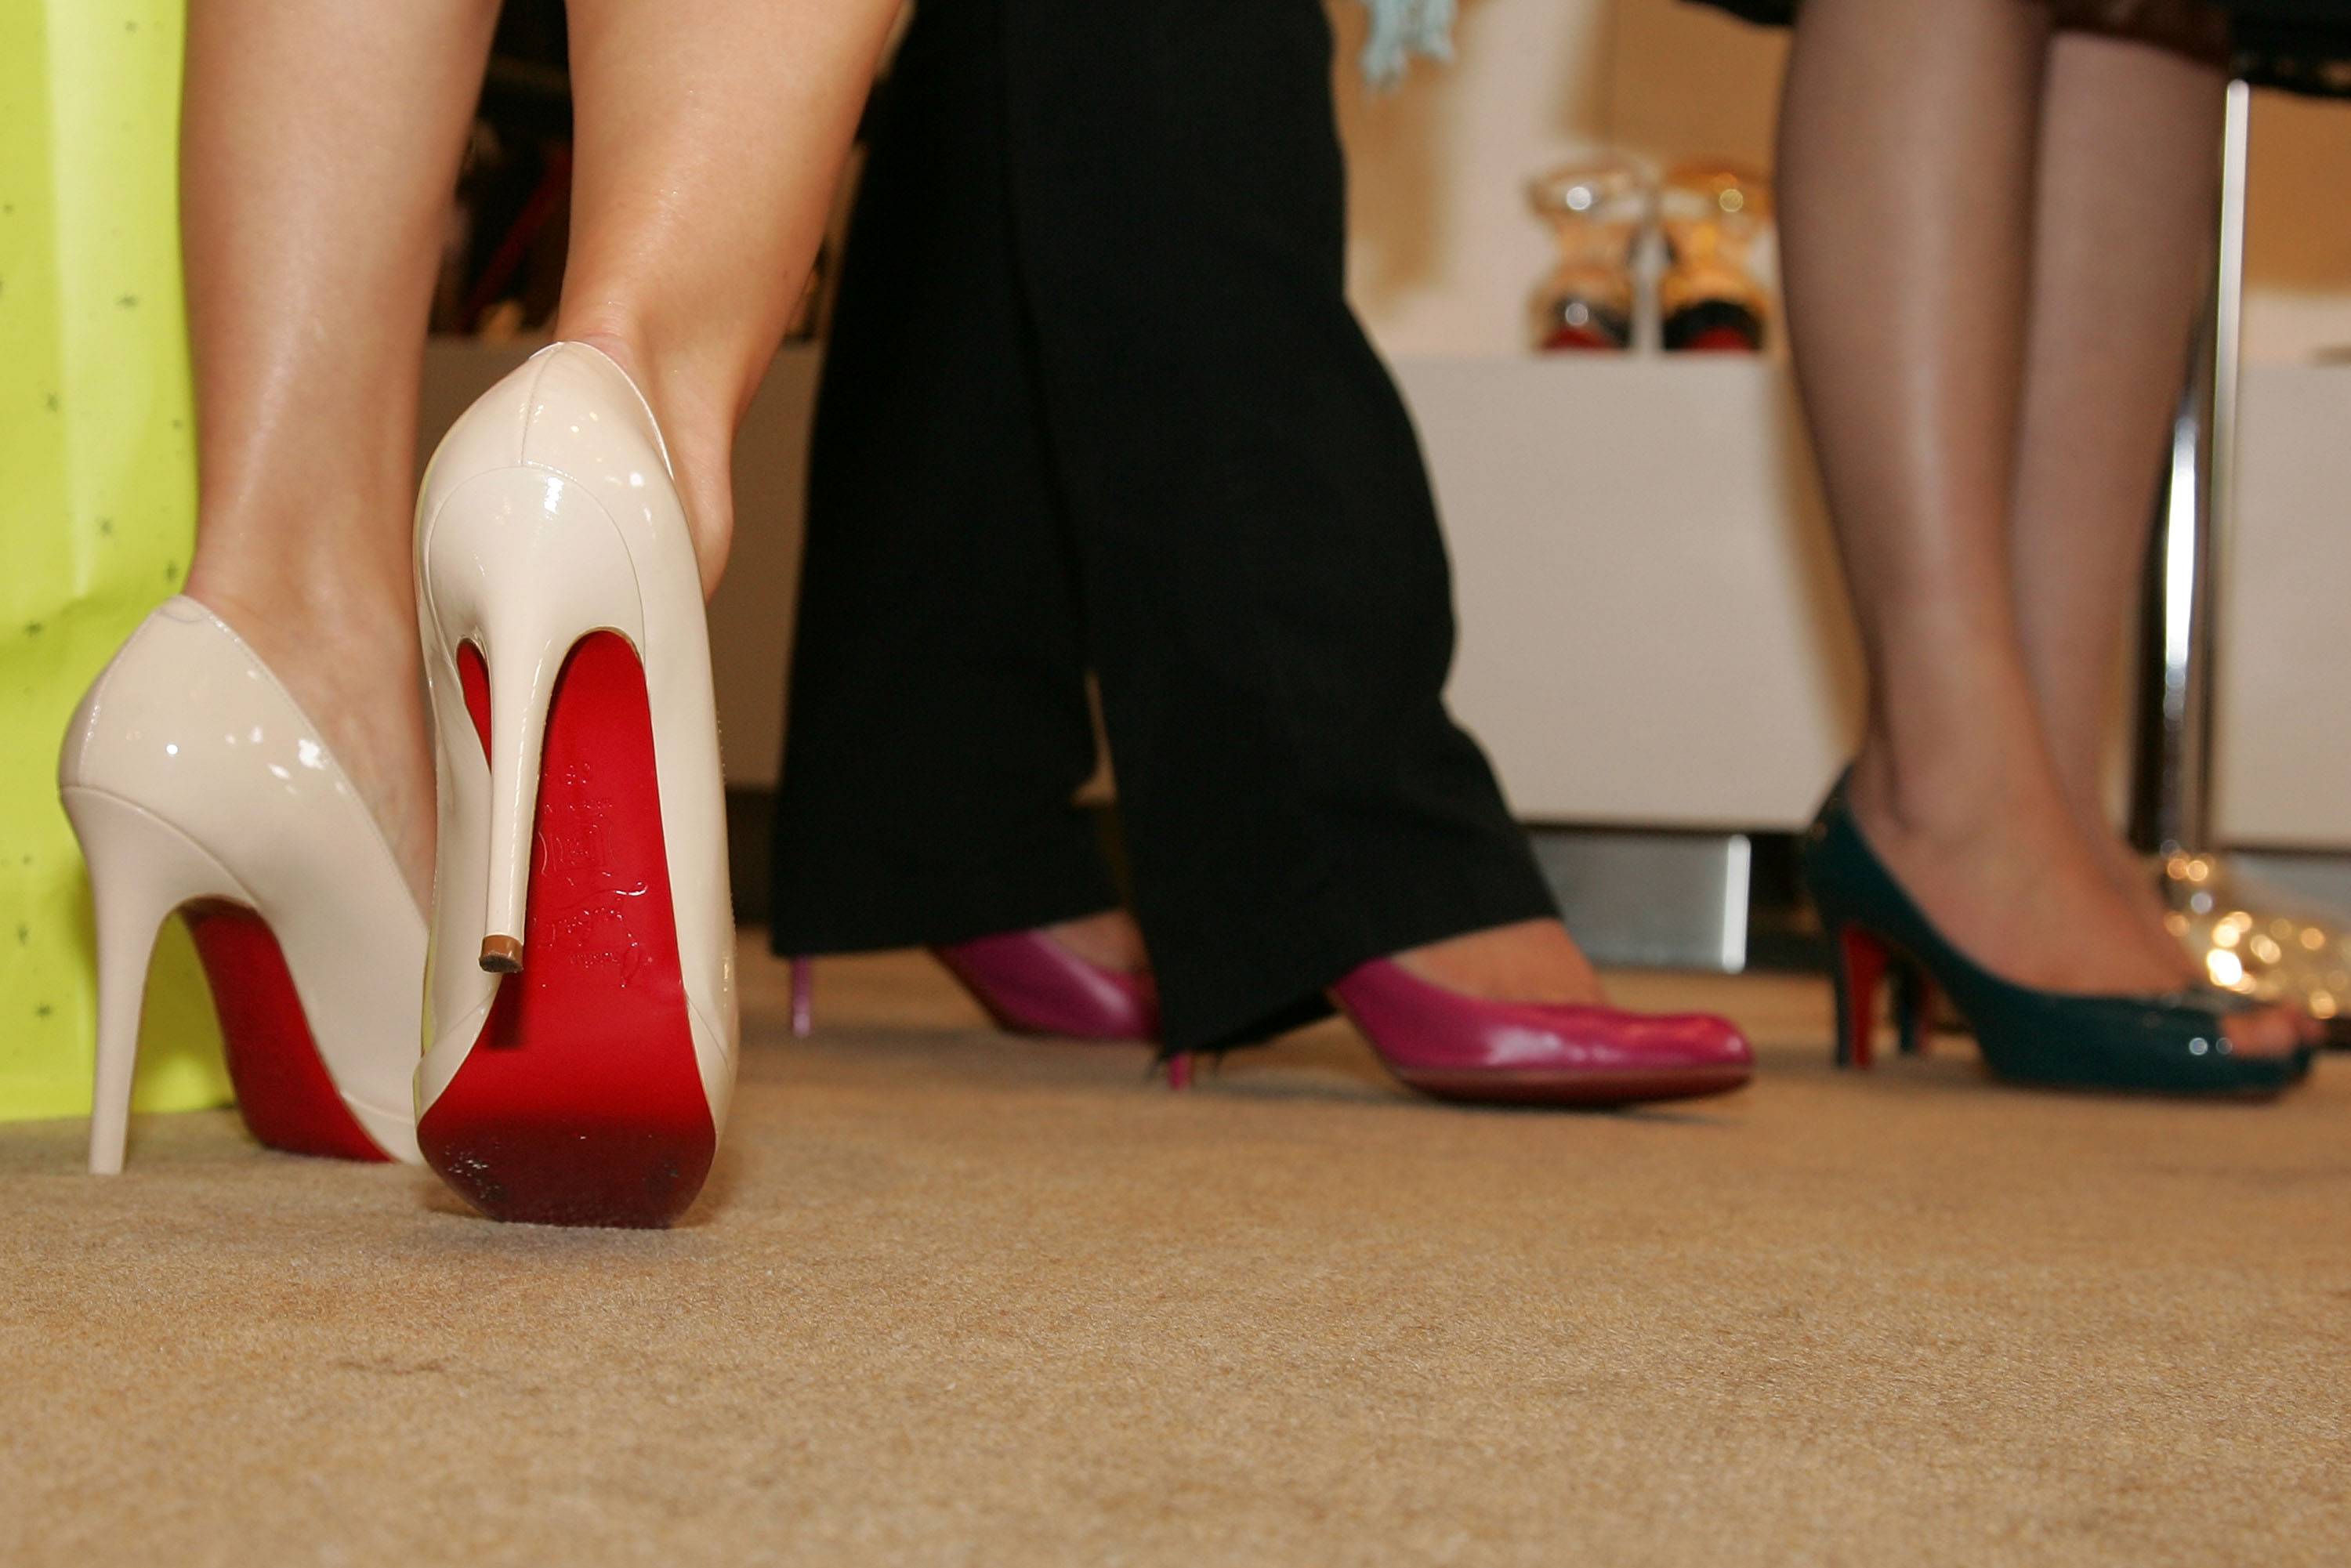 8489a832e03 Louboutin wins fight to trademark red soles